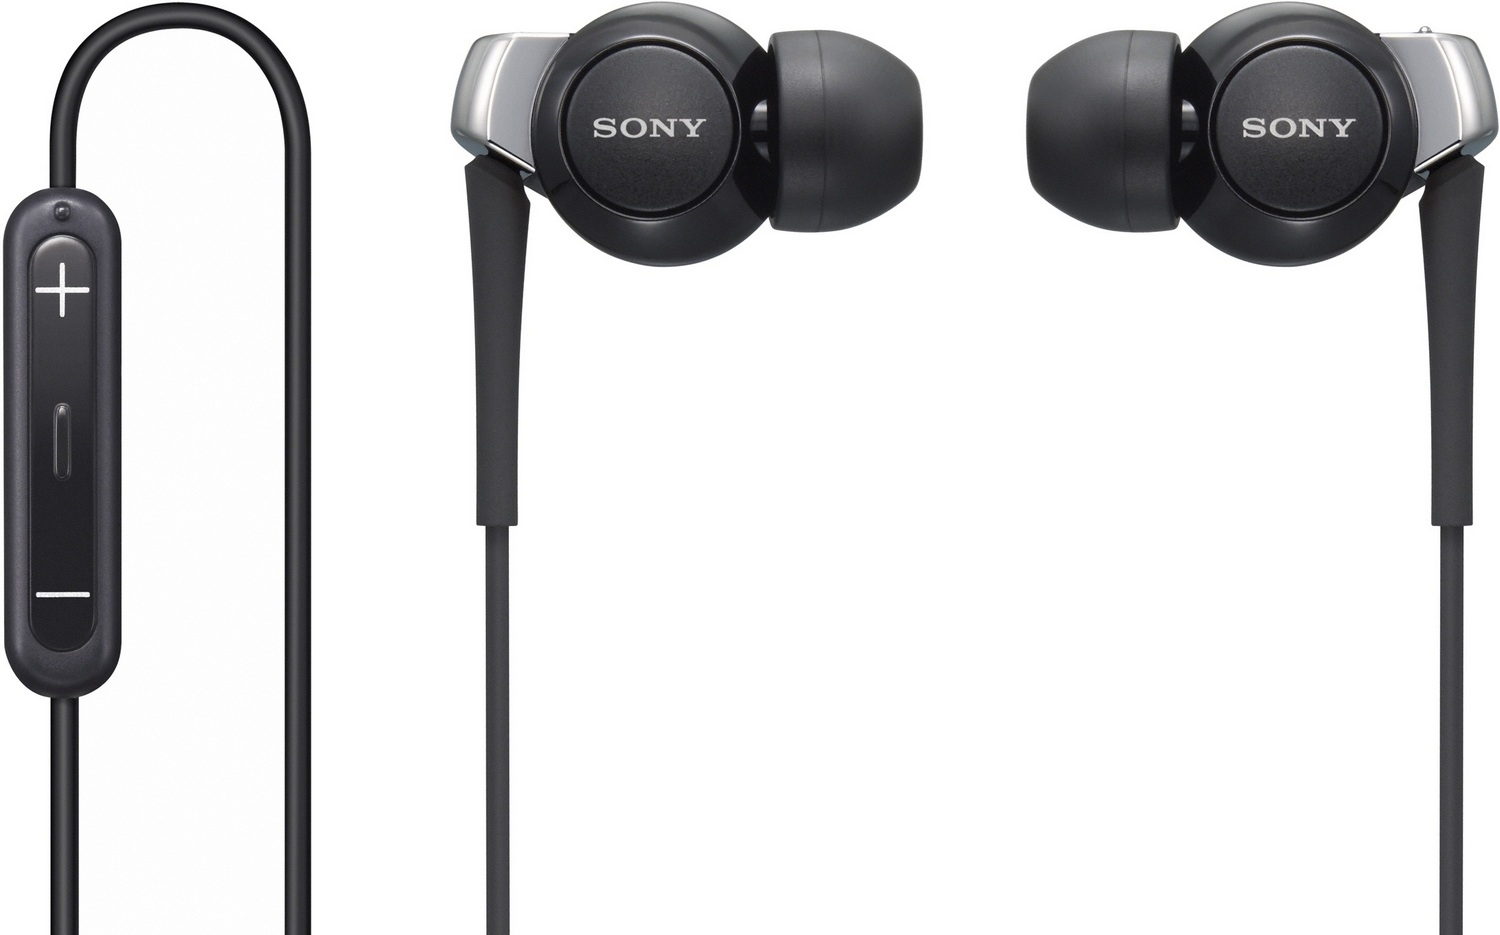 Sony DREX300IPB In-Ear Headphones For Iphone Ipod PC With Mic Remote Black New